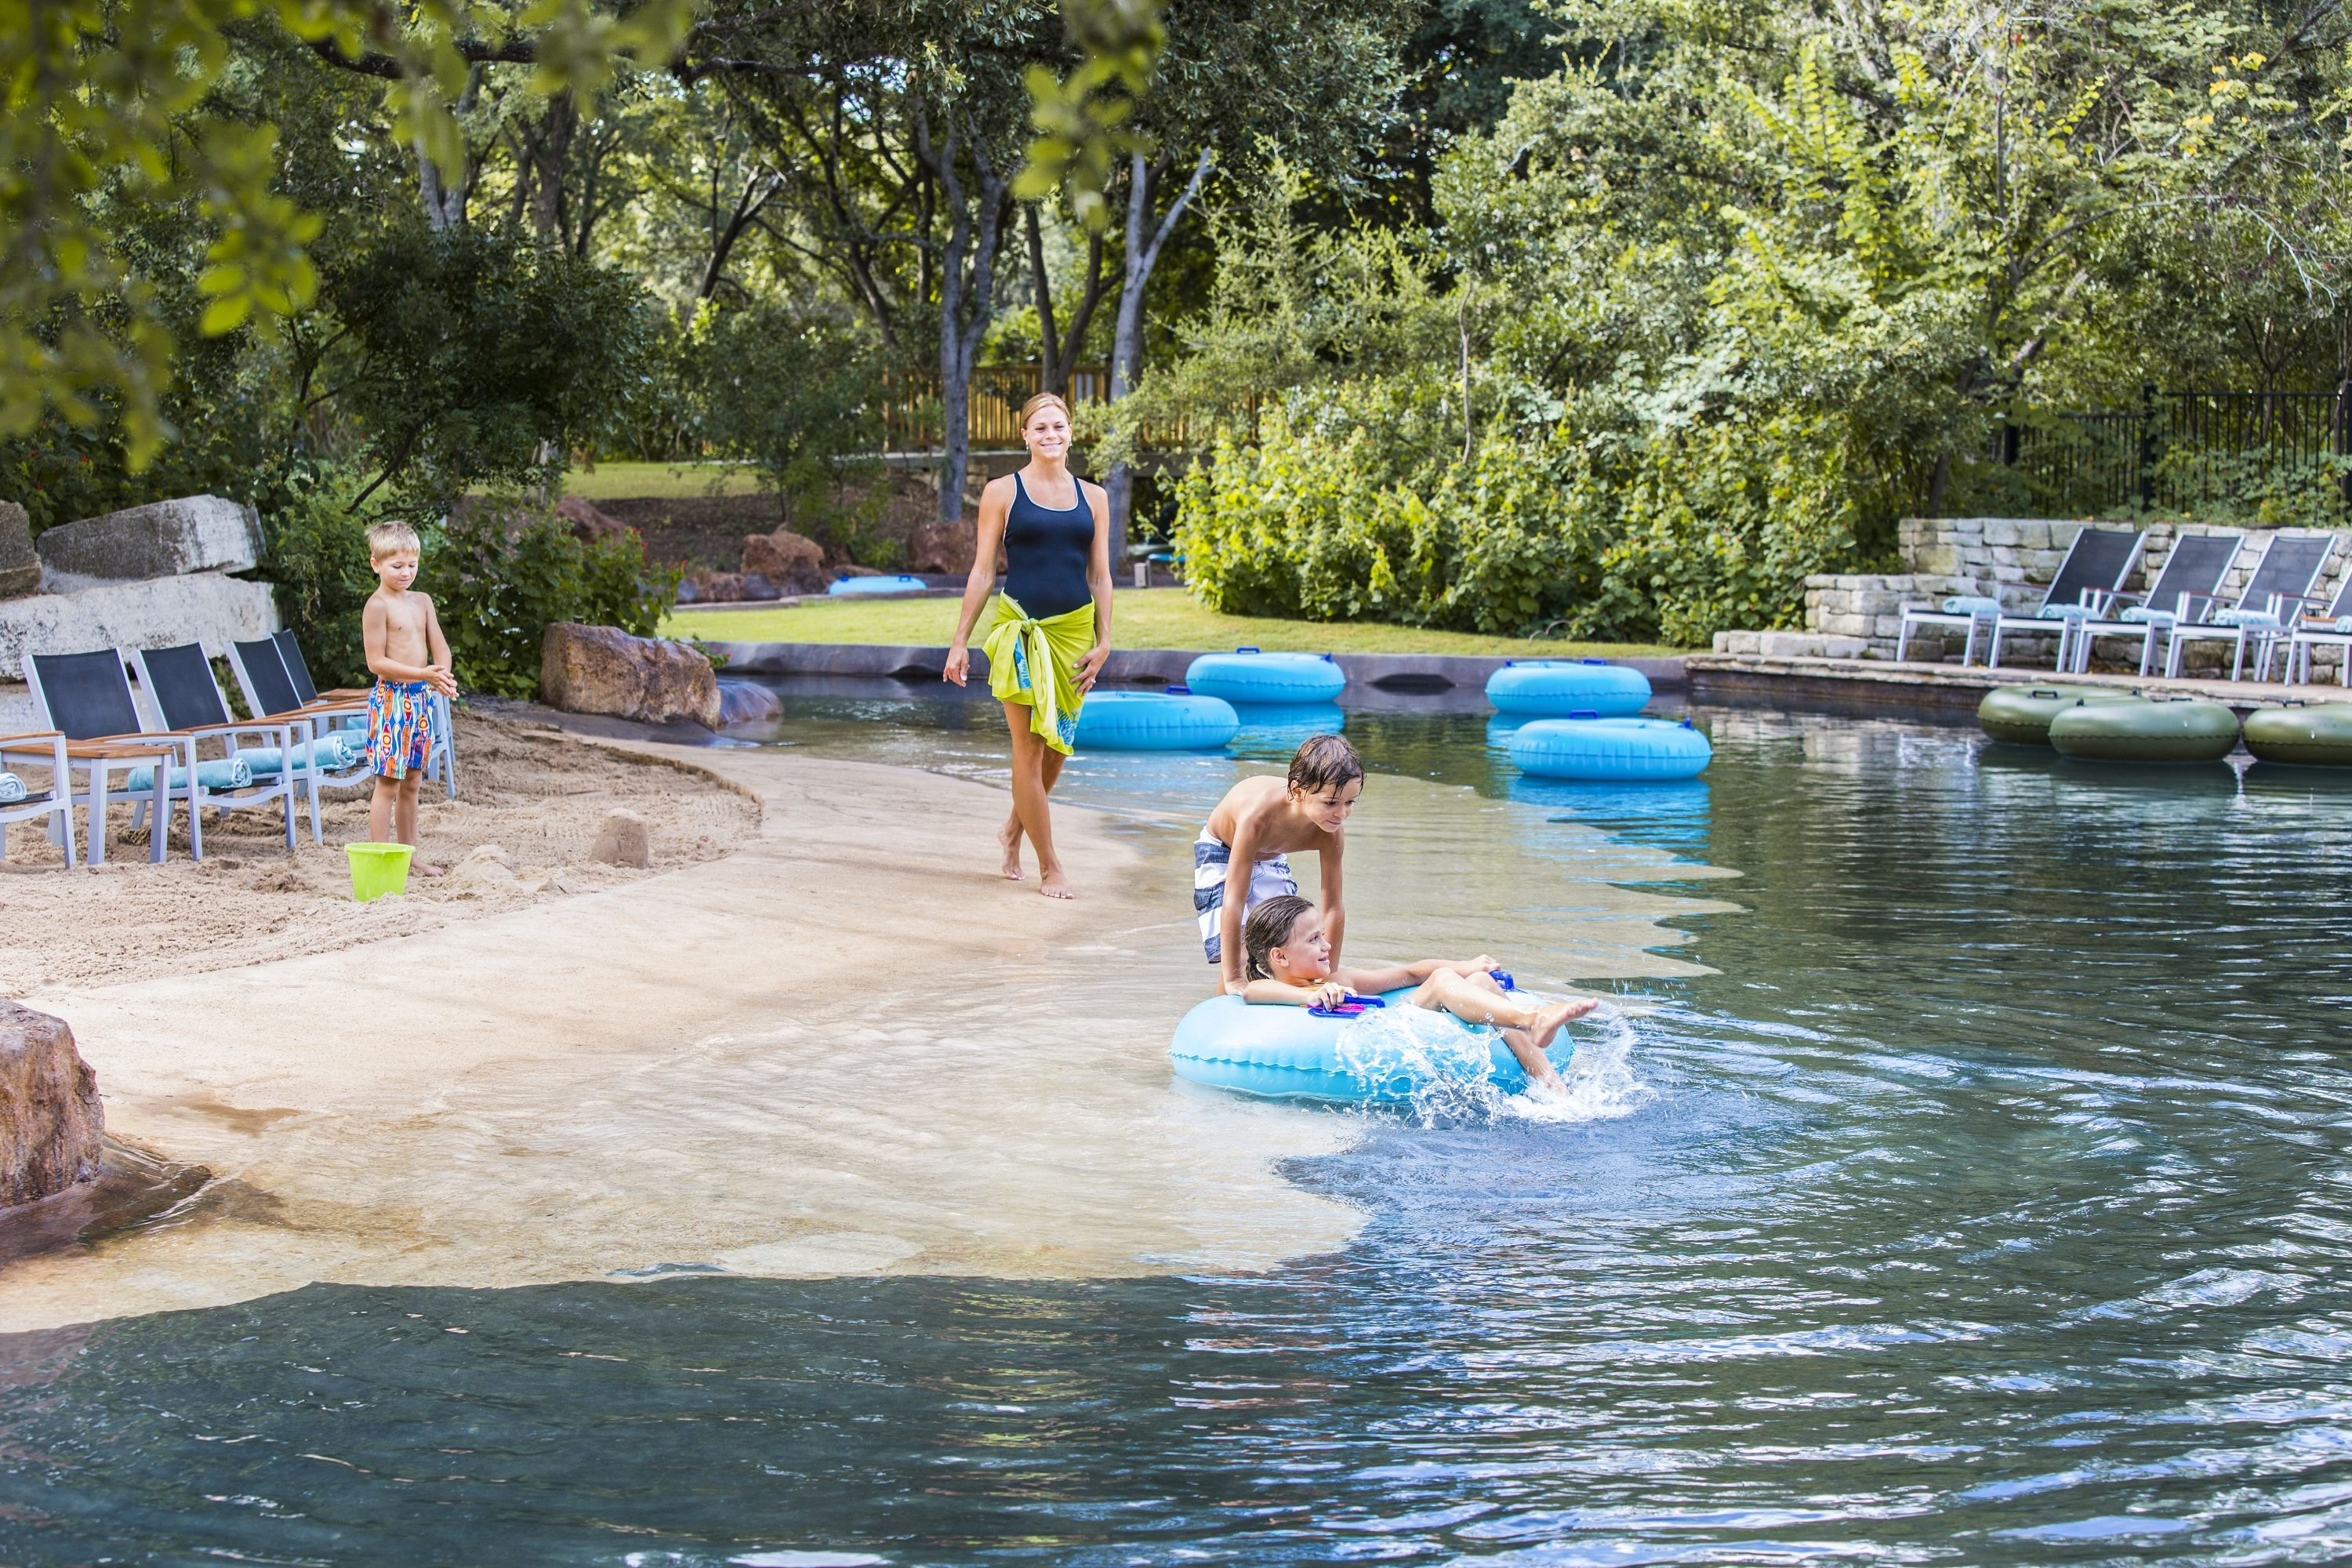 Get A Beach Vacation In The Texas Hill Country Our 950 Ramblin River Has A Beach Entry Great Hill Country Resort Family Friendly Resorts San Antonio Hotels